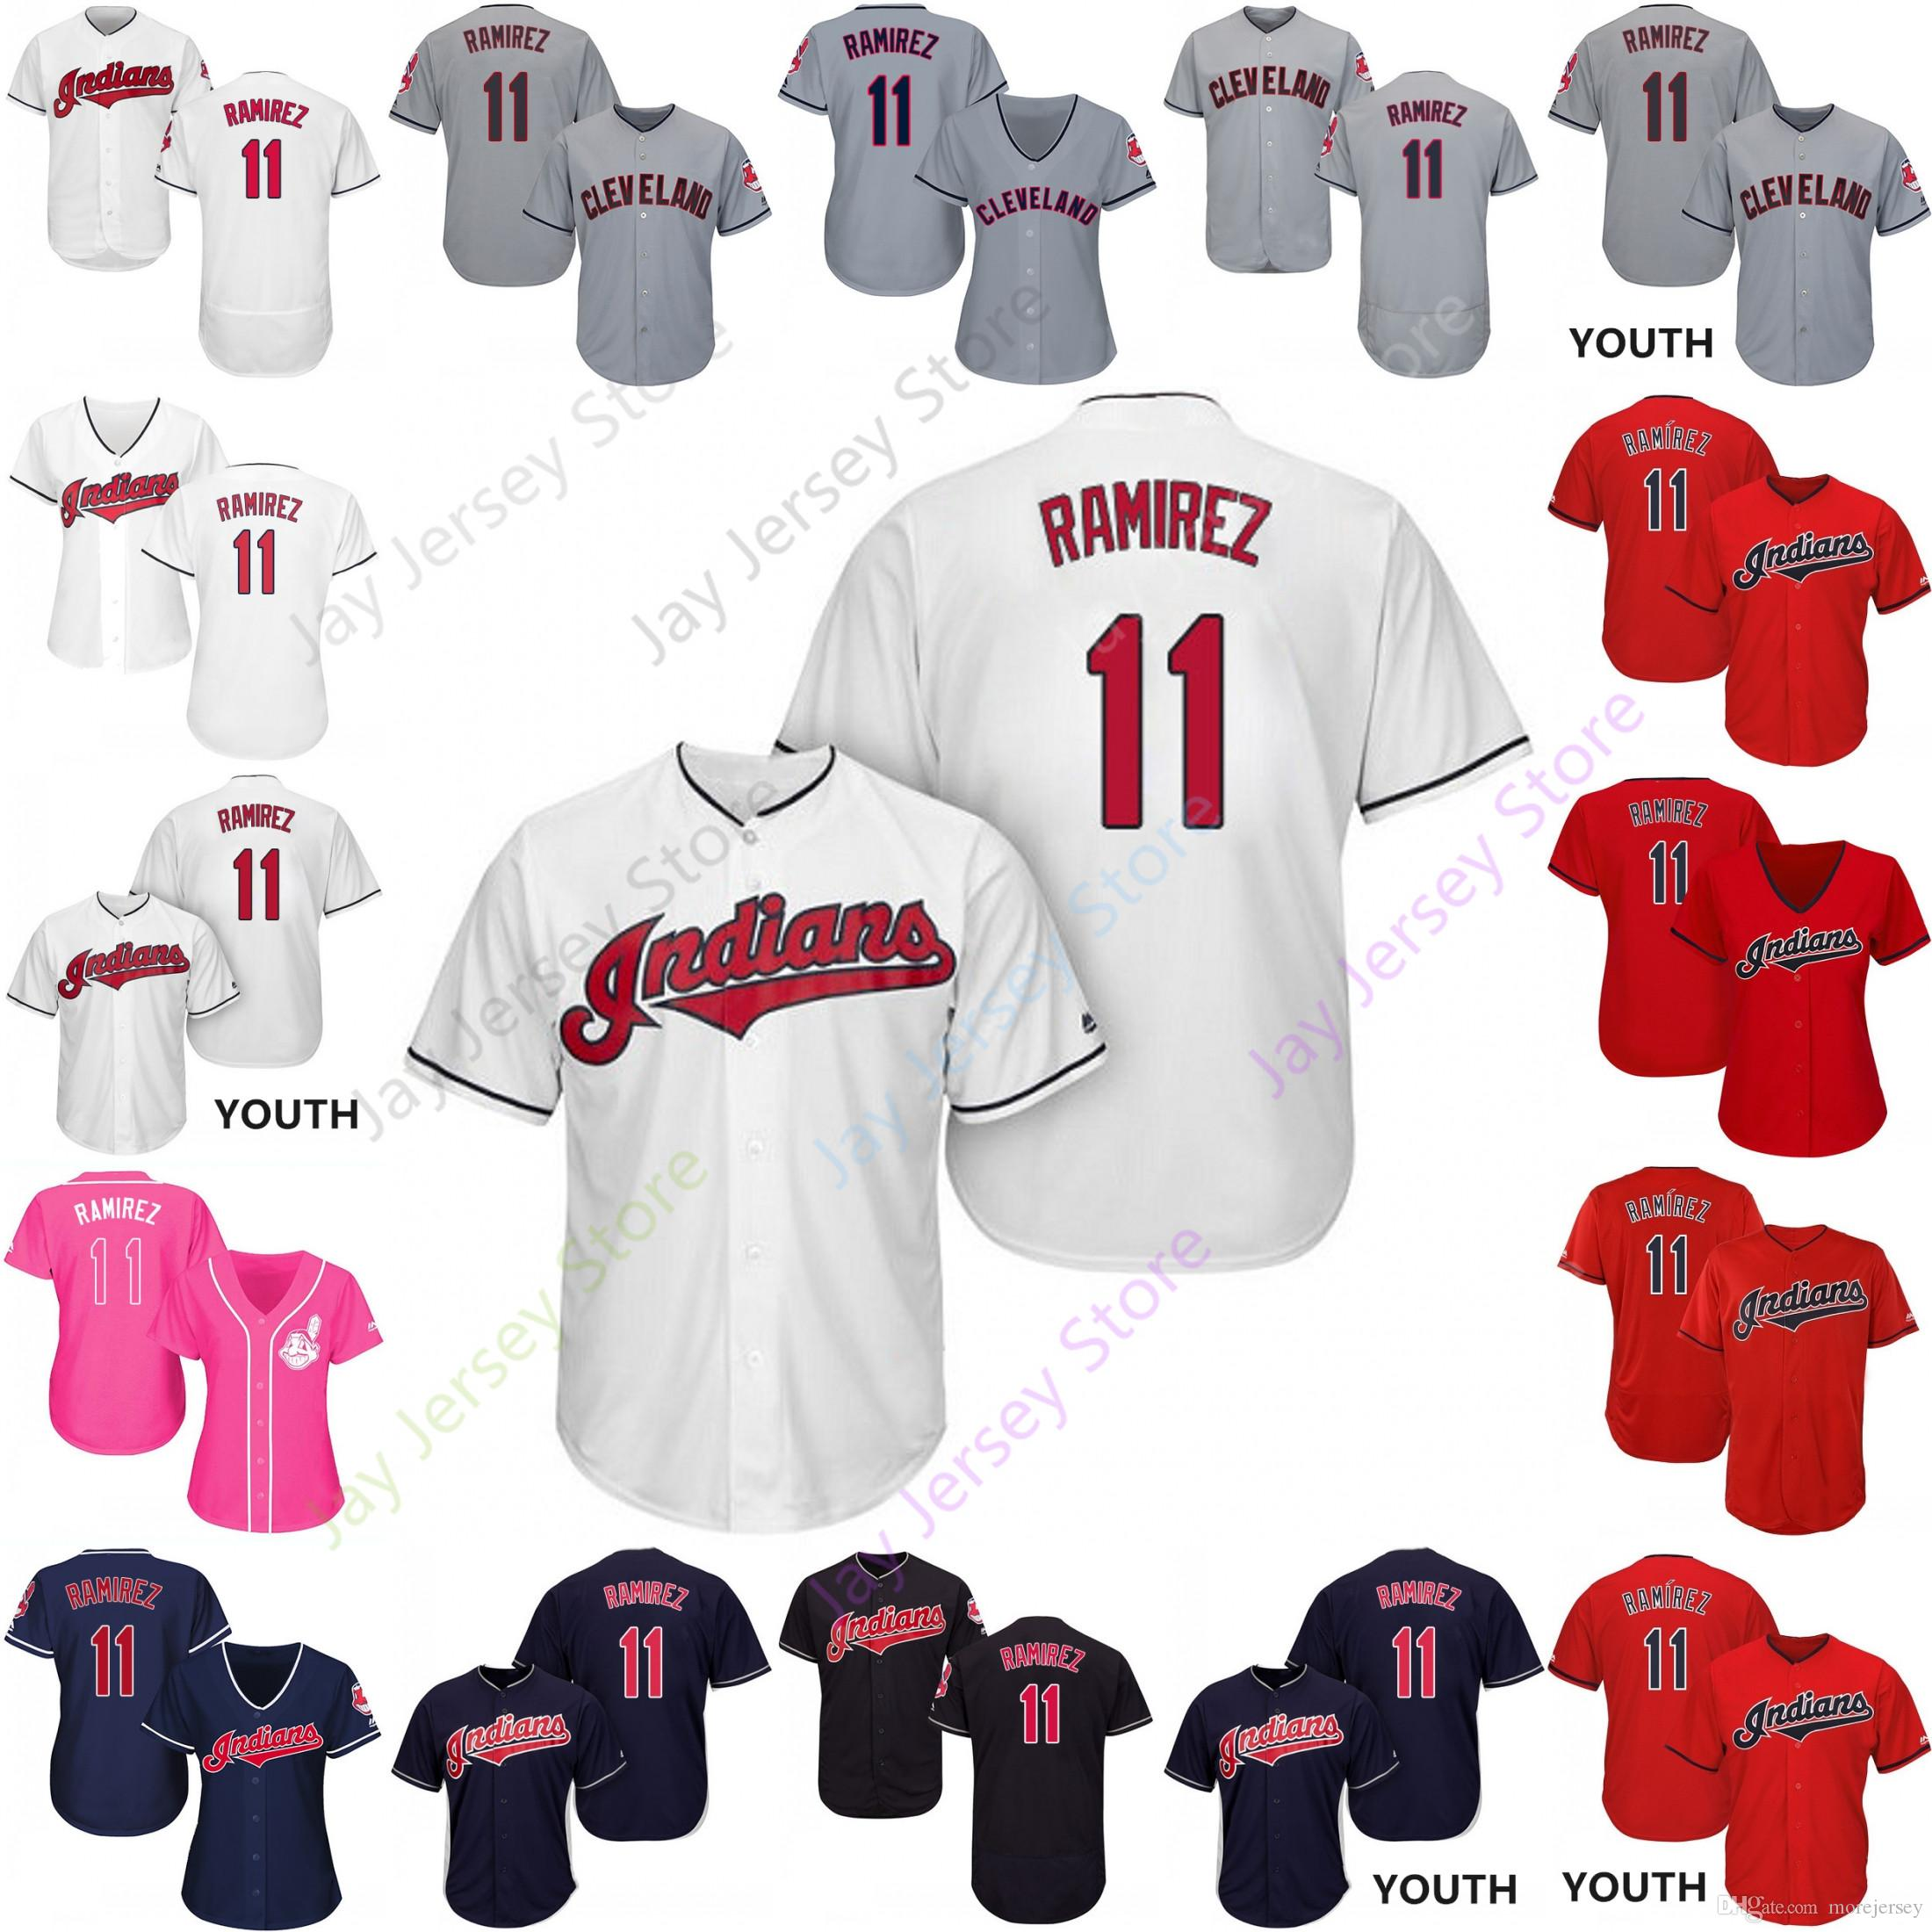 best website 65201 687c2 2019 Cleveland 11 Jose Ramirez Jersey Indians Jerseys Cool Base Flexbase  Home Away White Black Red Grey Pullover Button Men Women Youth